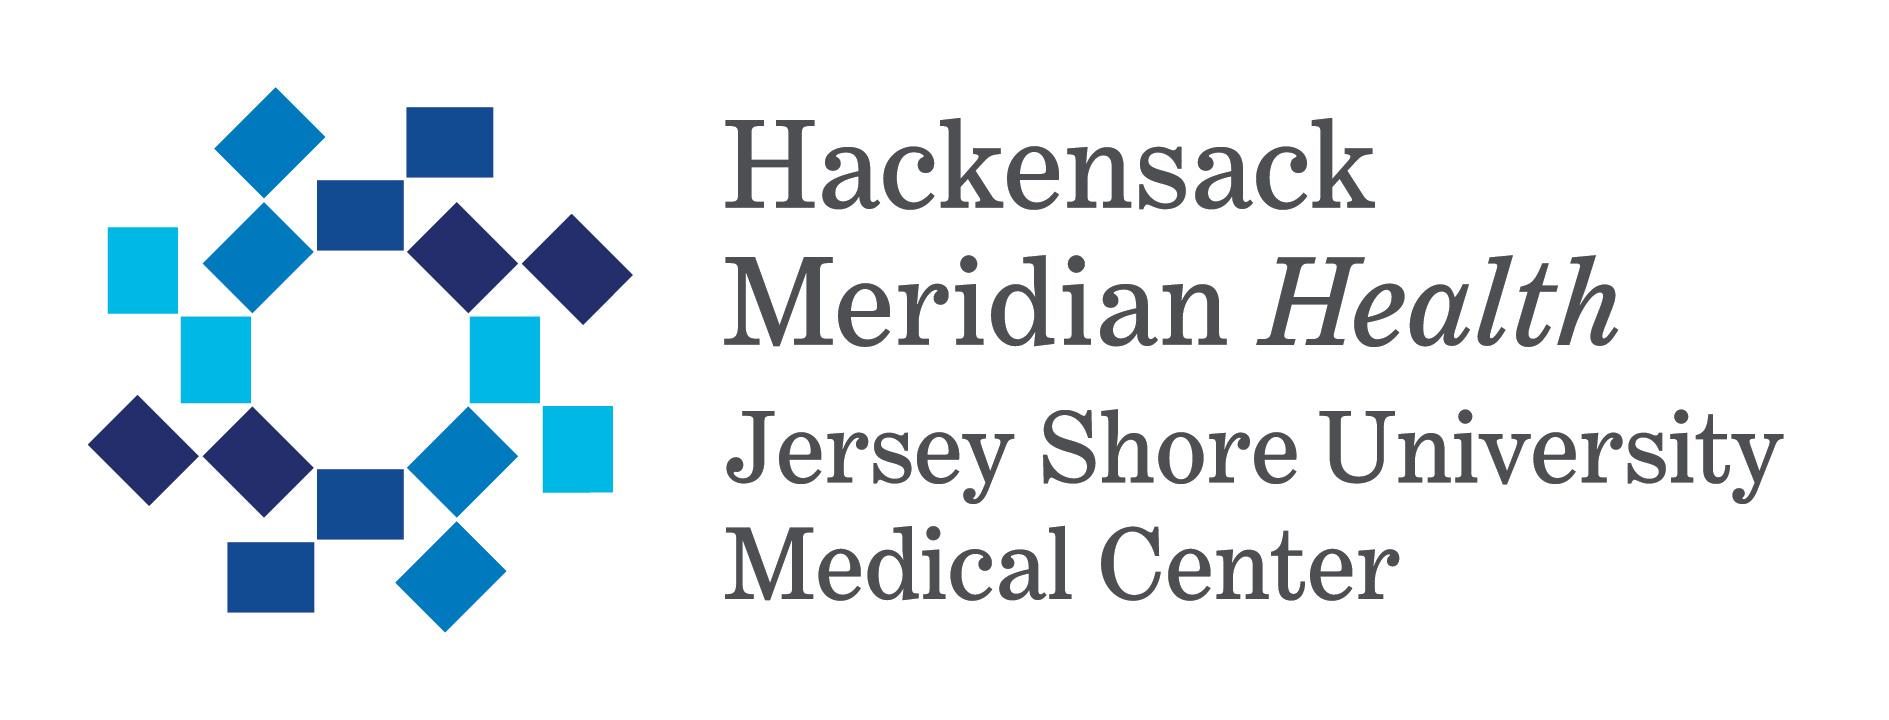 Medical Director Gynecologic Oncology - Hackensack Meridian Health - Jersey Shore University Medical Center